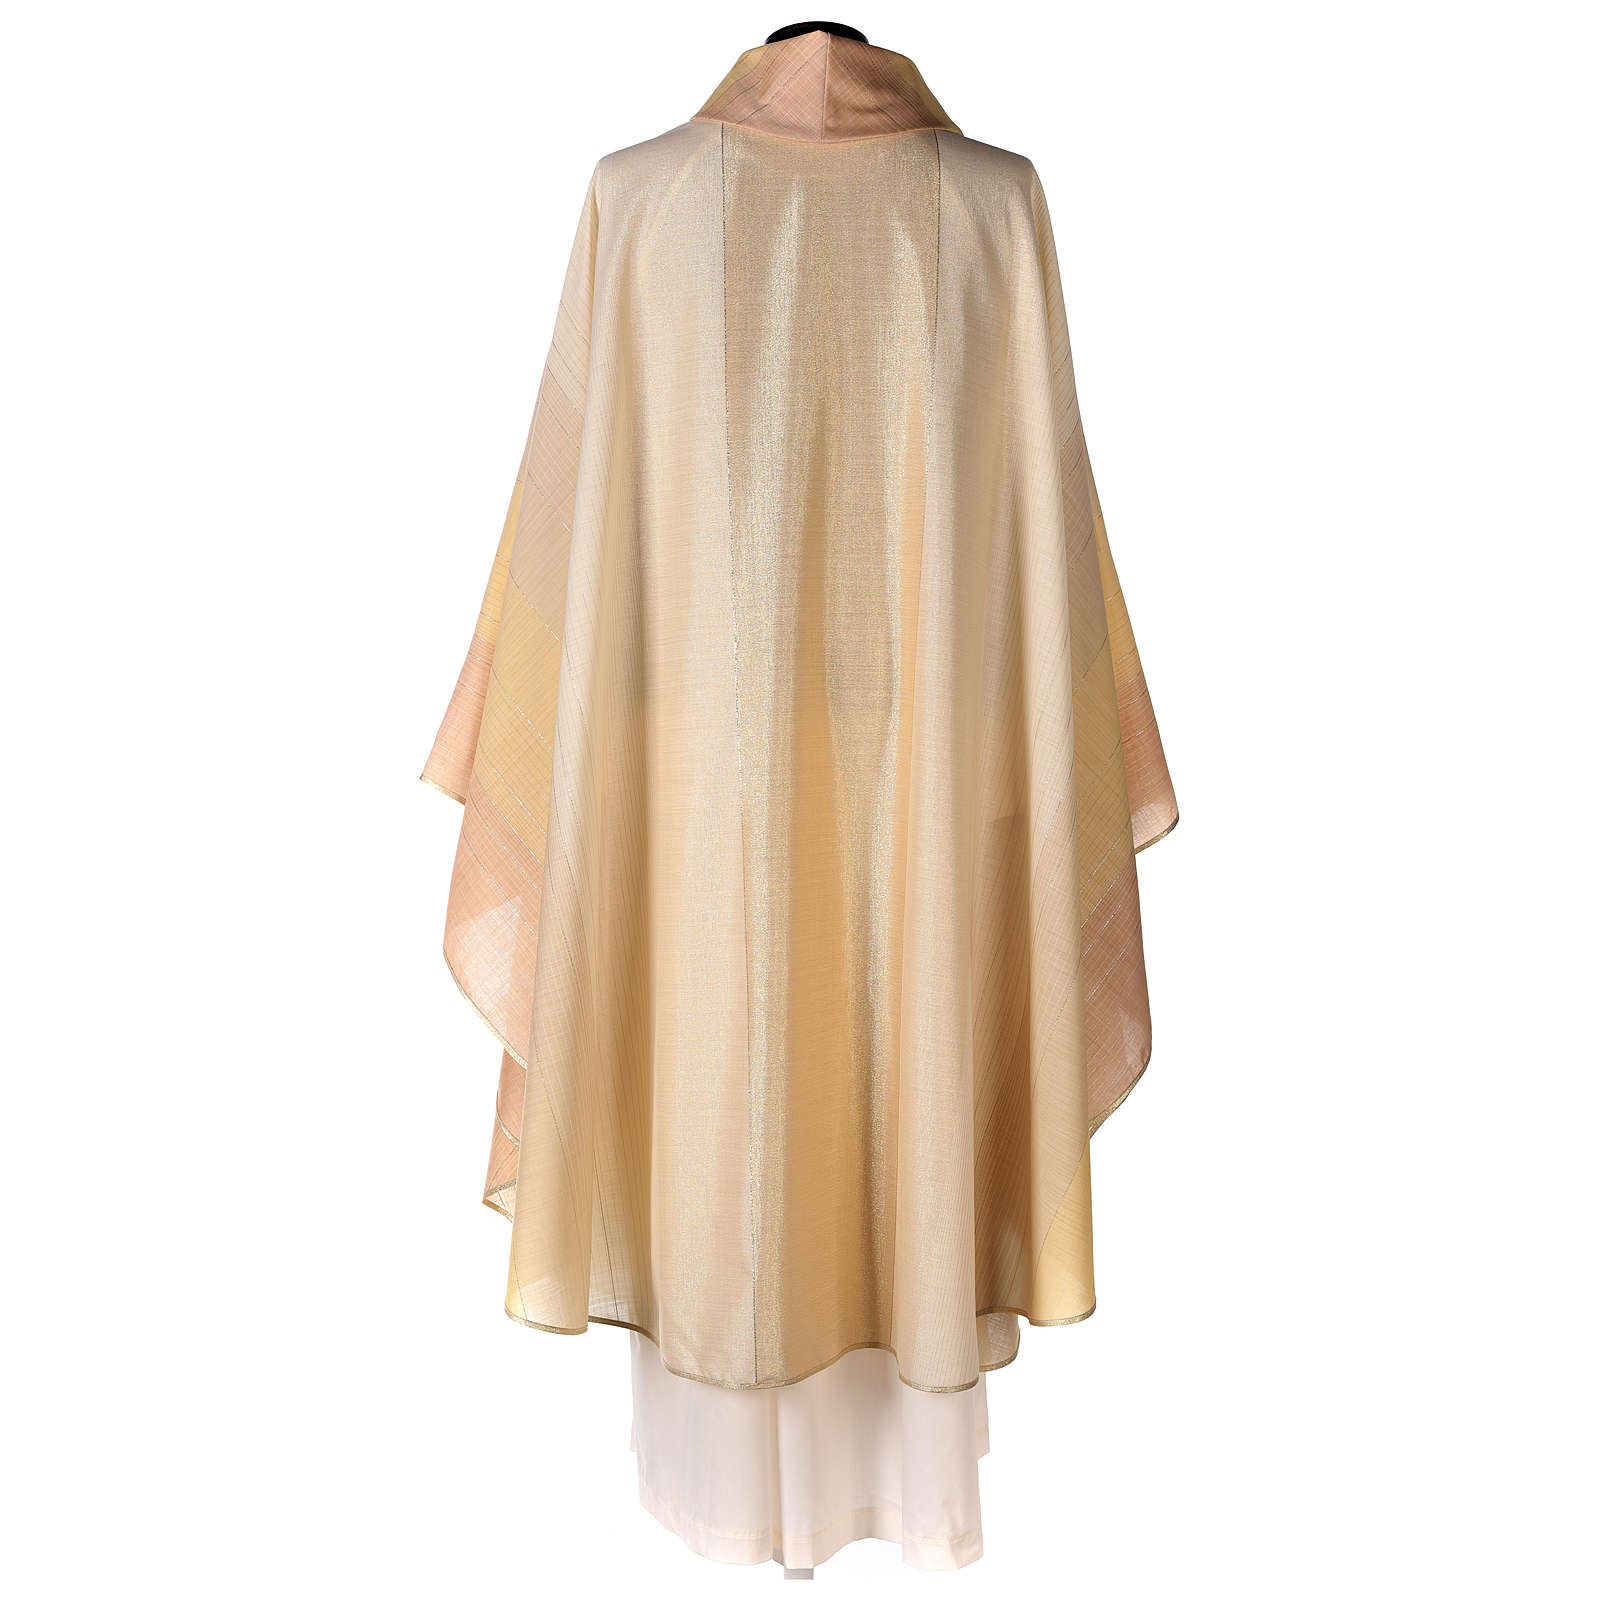 Blended Color Chasuble in wool and lurex 4